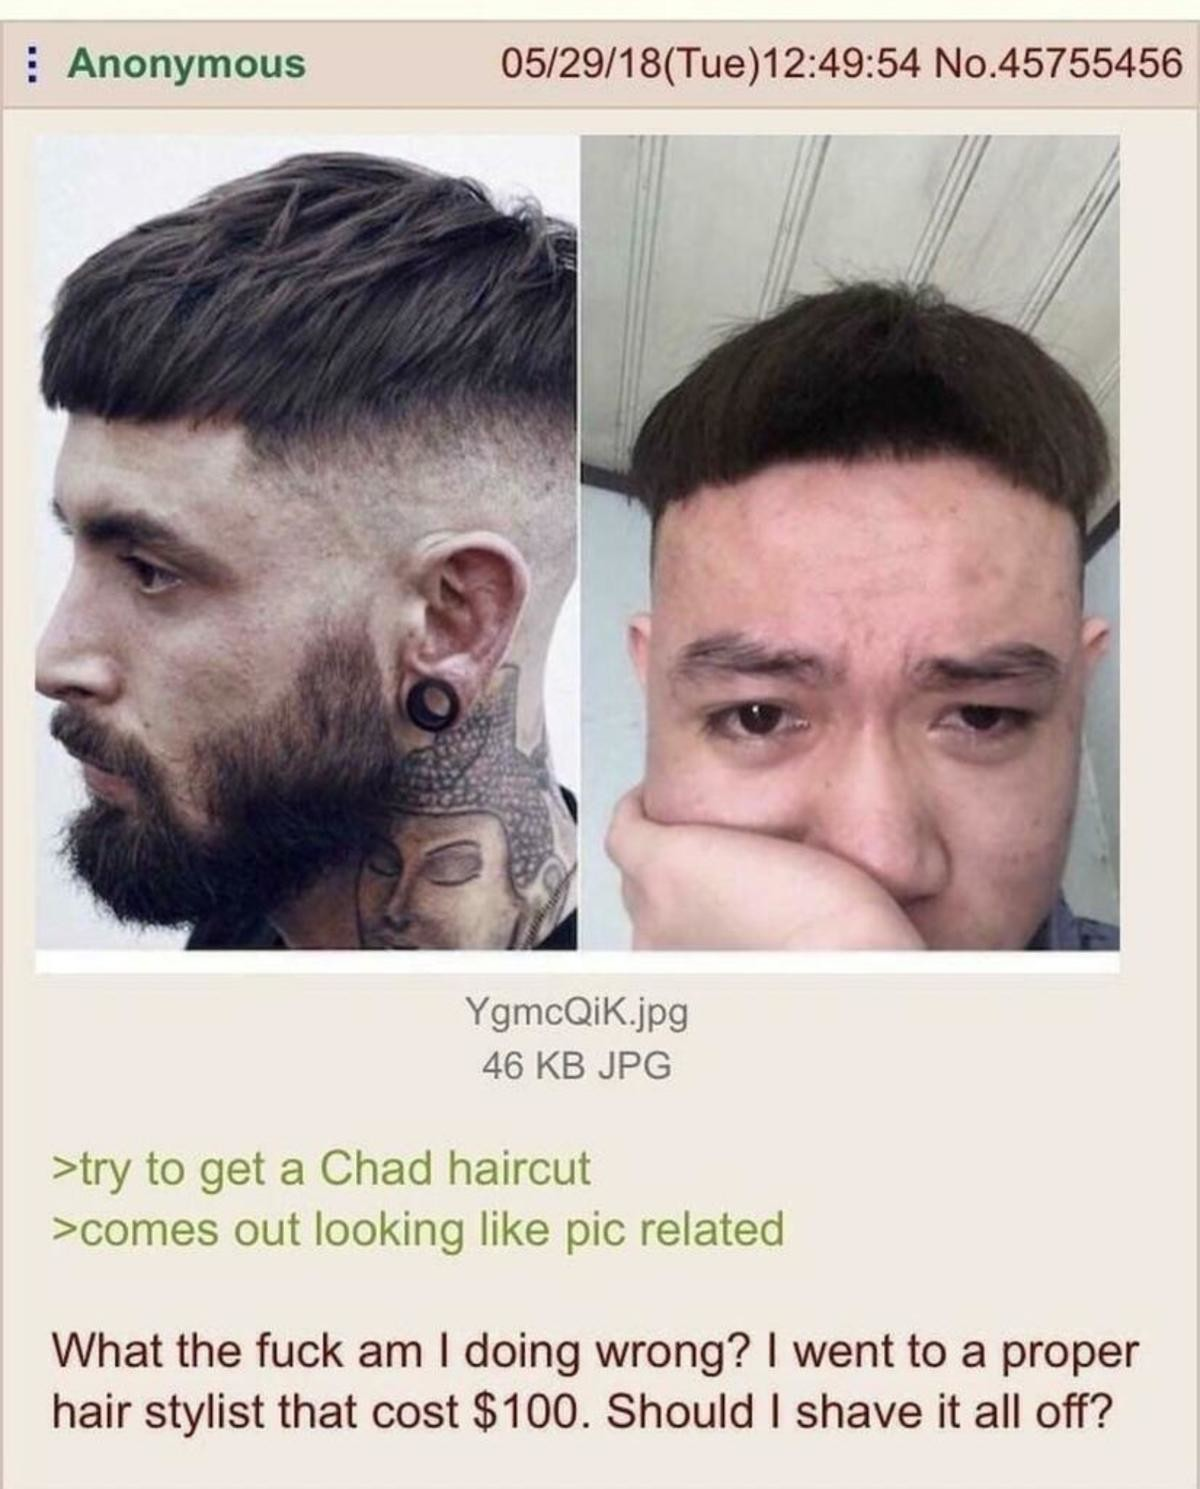 The virgin haircut vs the chad naturale. .. Looks like on the left too